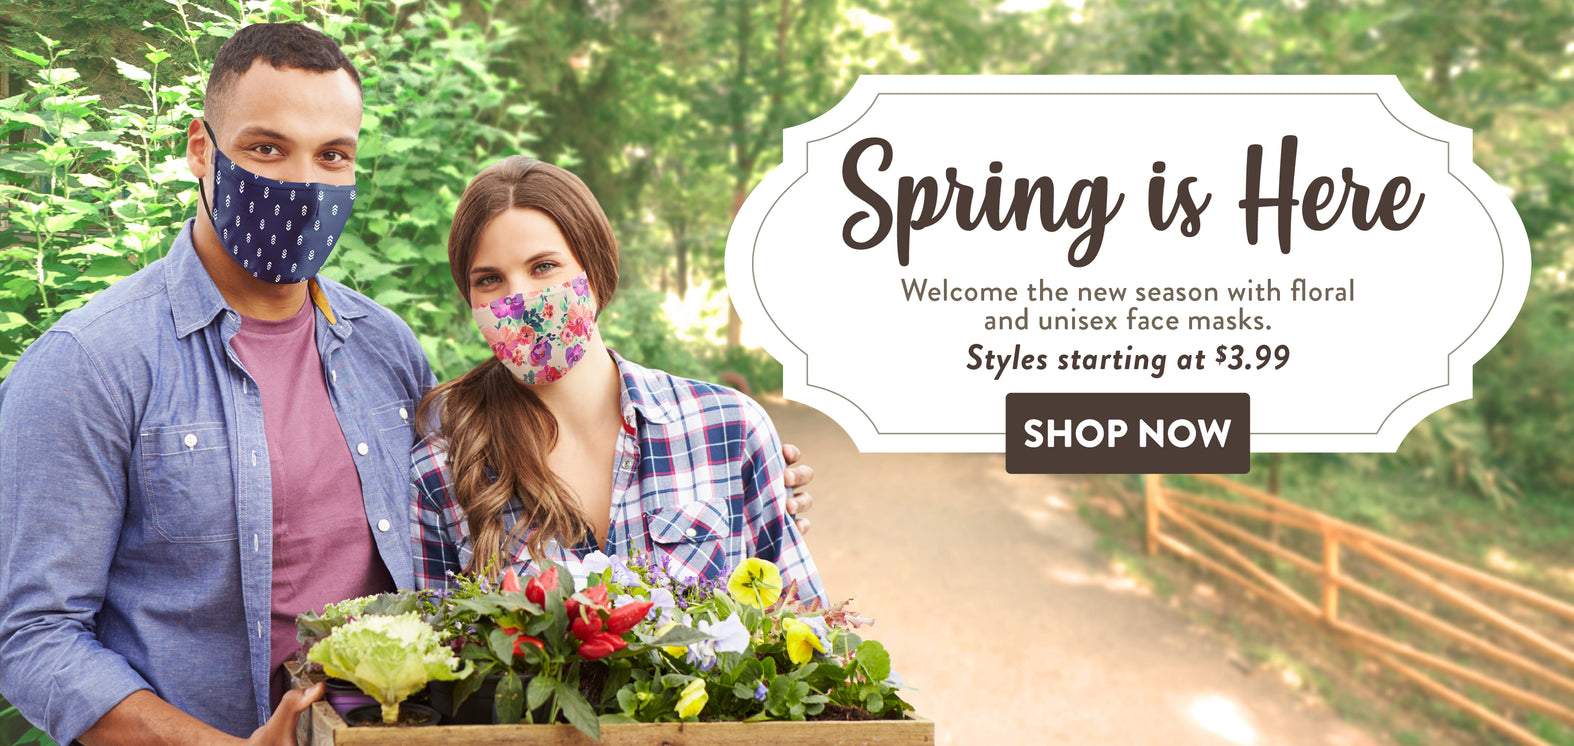 Banner for unisex face masks for spring season